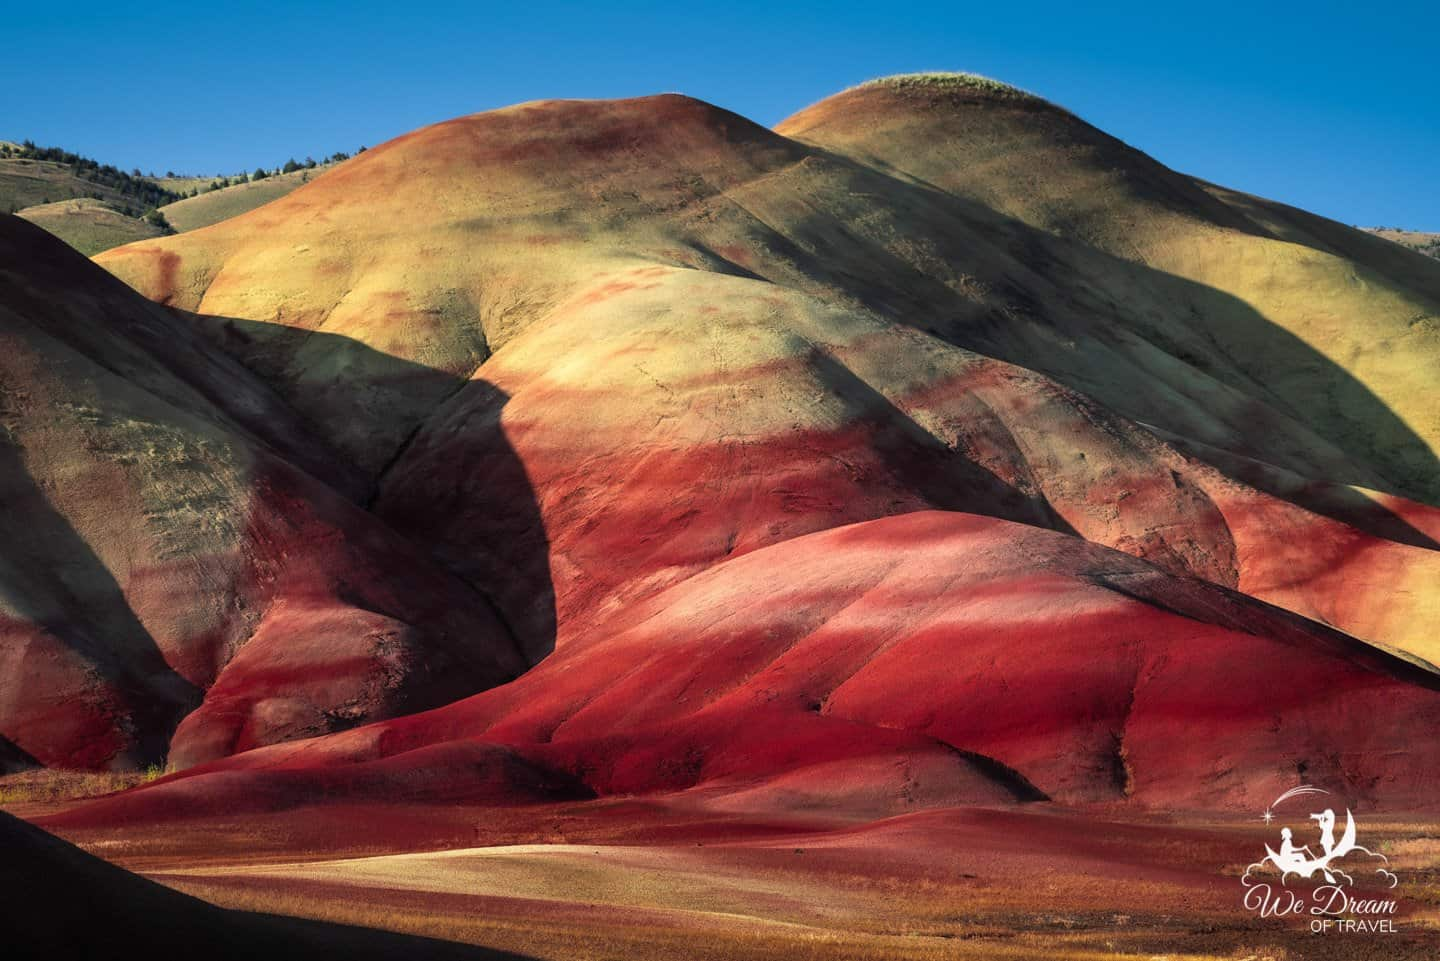 Sunset light on the Fossil Beds in the Painted Hills Unit.